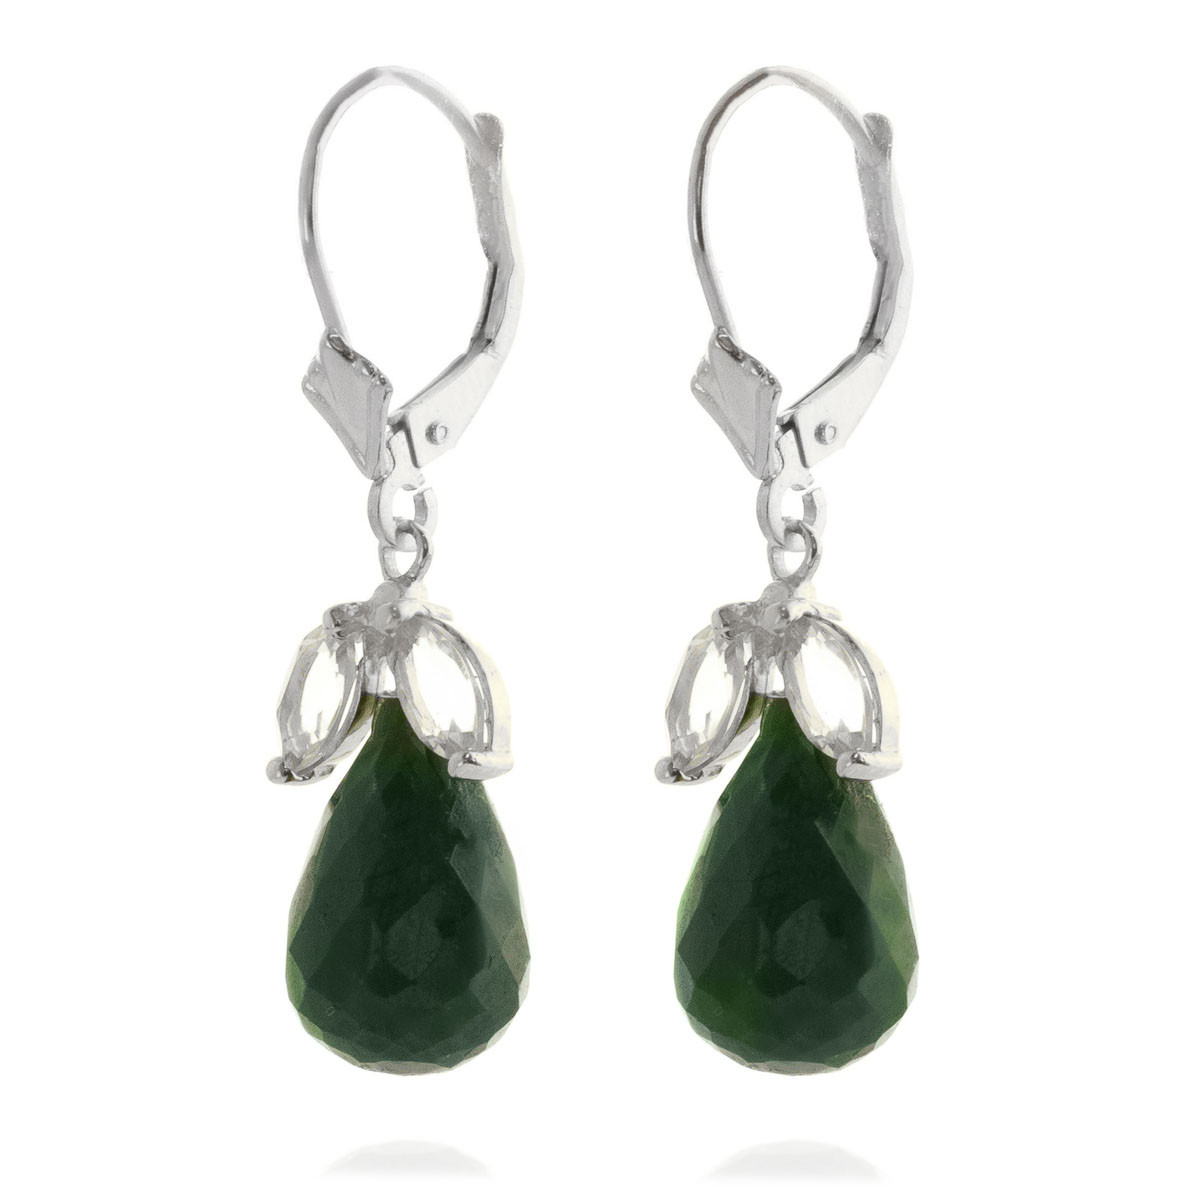 Emerald & White Topaz Snowdrop Earrings in 9ct White Gold